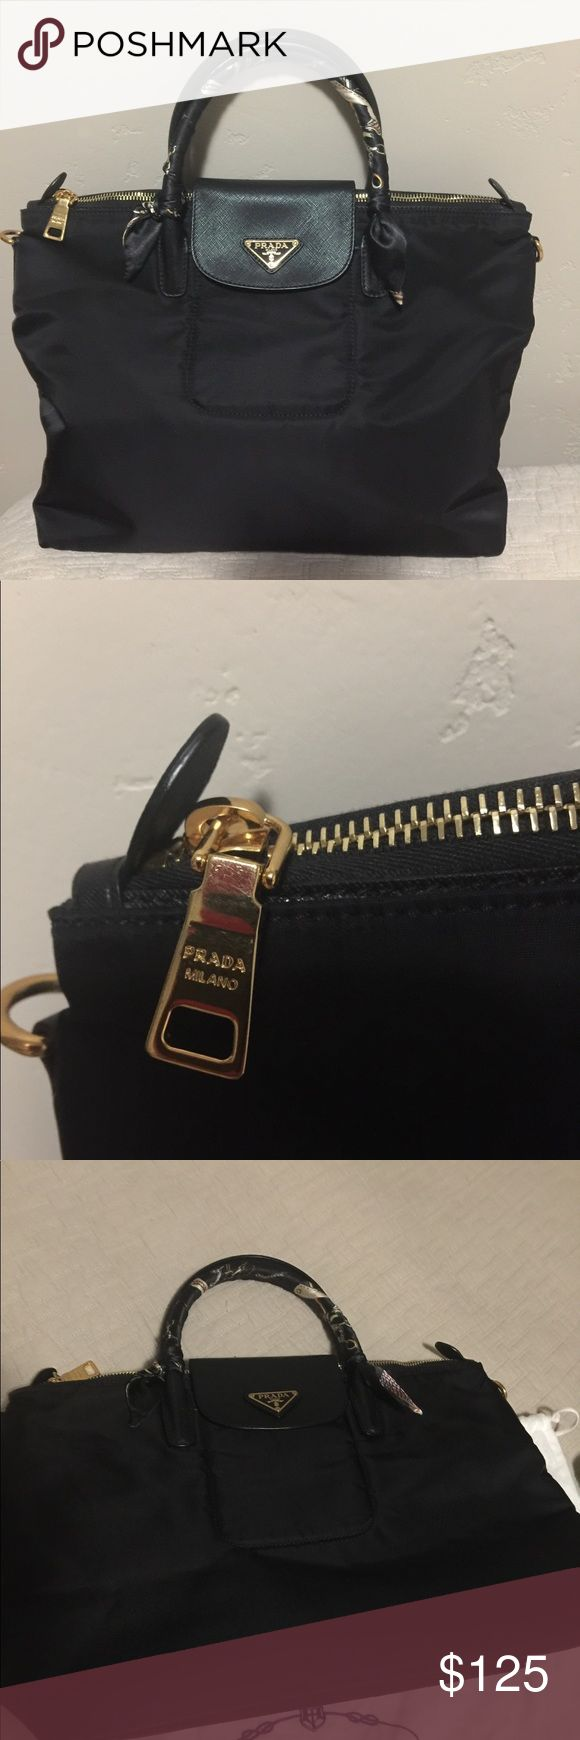 Prada Tessuto Saffiano Medium Bought from online seller. Has some issues with the glazing on one of the handles. Photo attached for reference. In excellent condition. Price reflects status. Not real. Seller calls it authentic quality. Preloved. Prada Bags Crossbody Bags